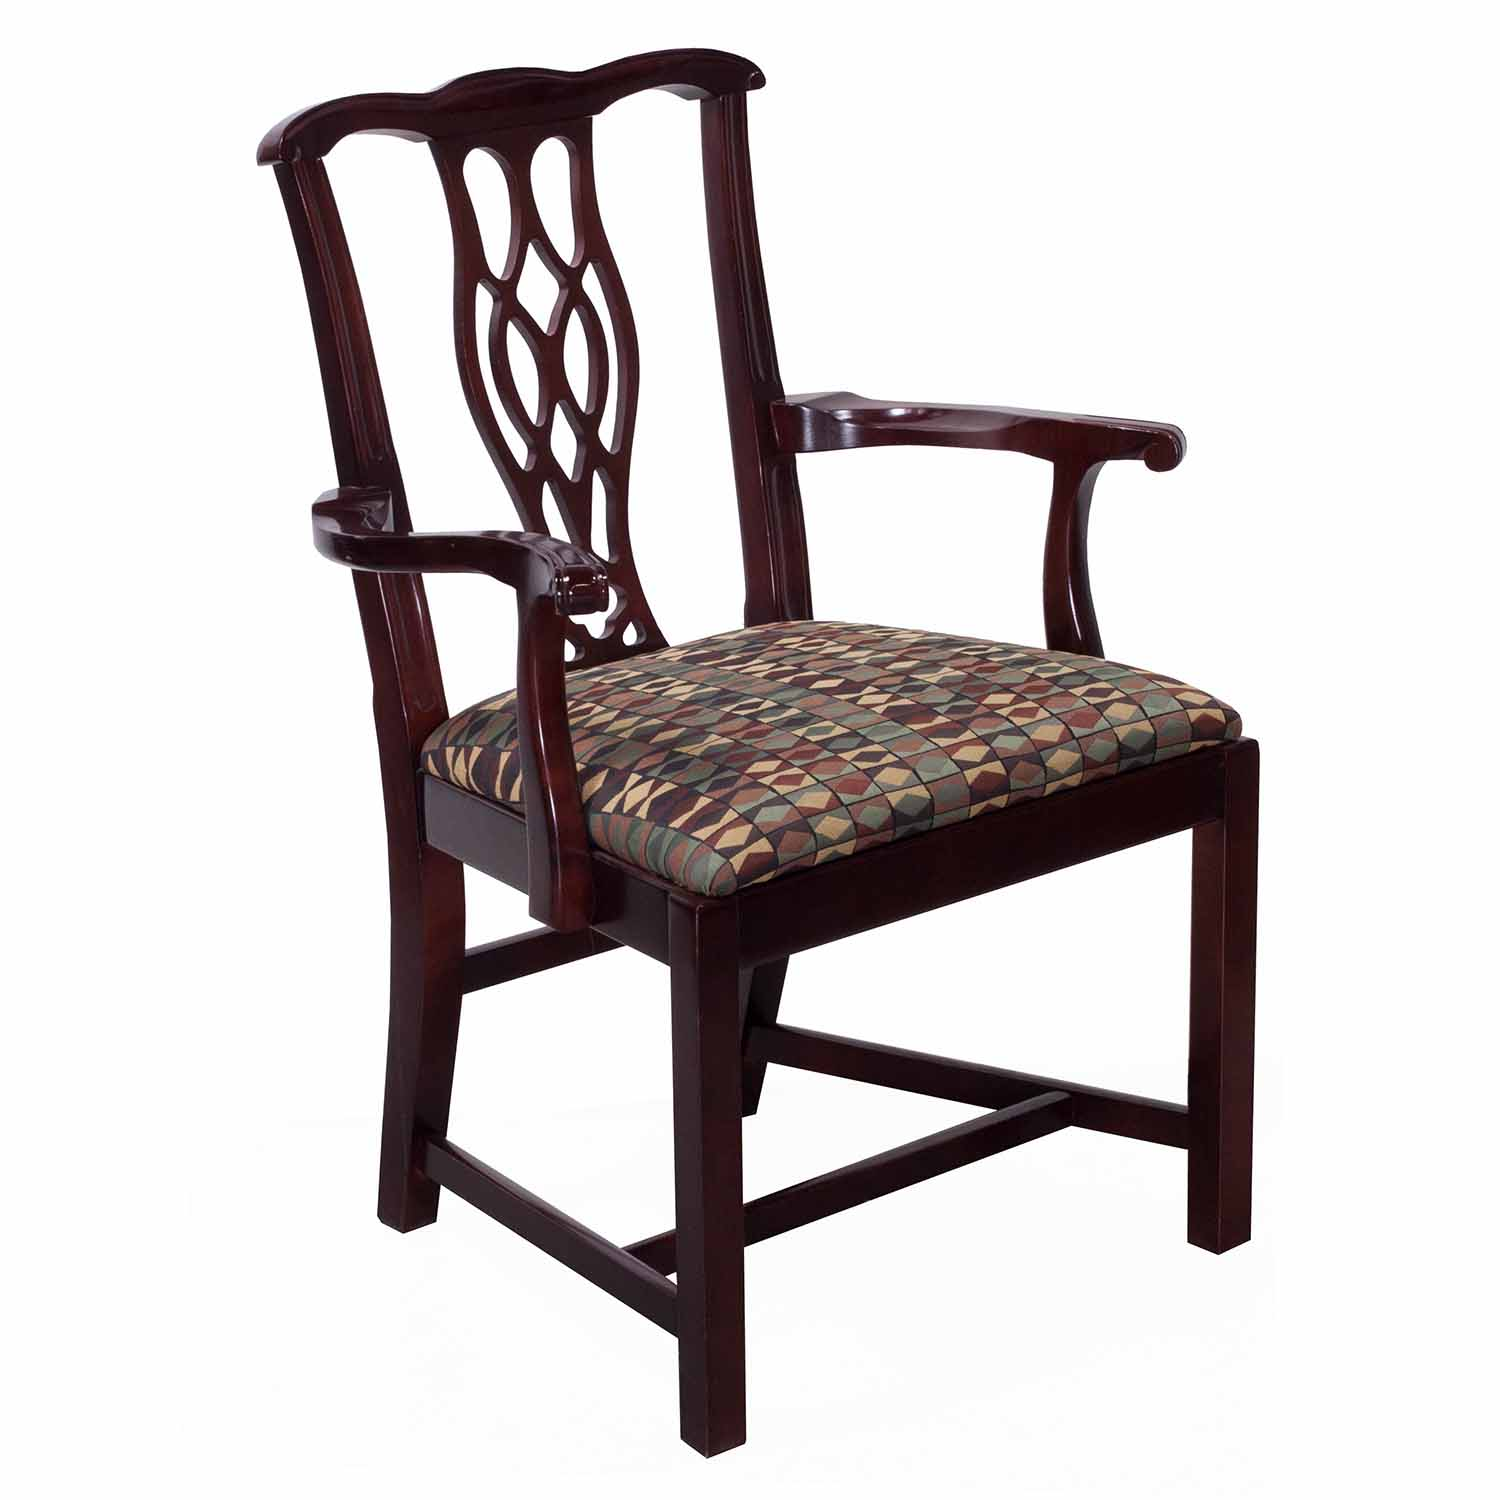 Wooden Chairs With Arms Bernhardt Eaton Square Used Wooden Arm Chair Mocha